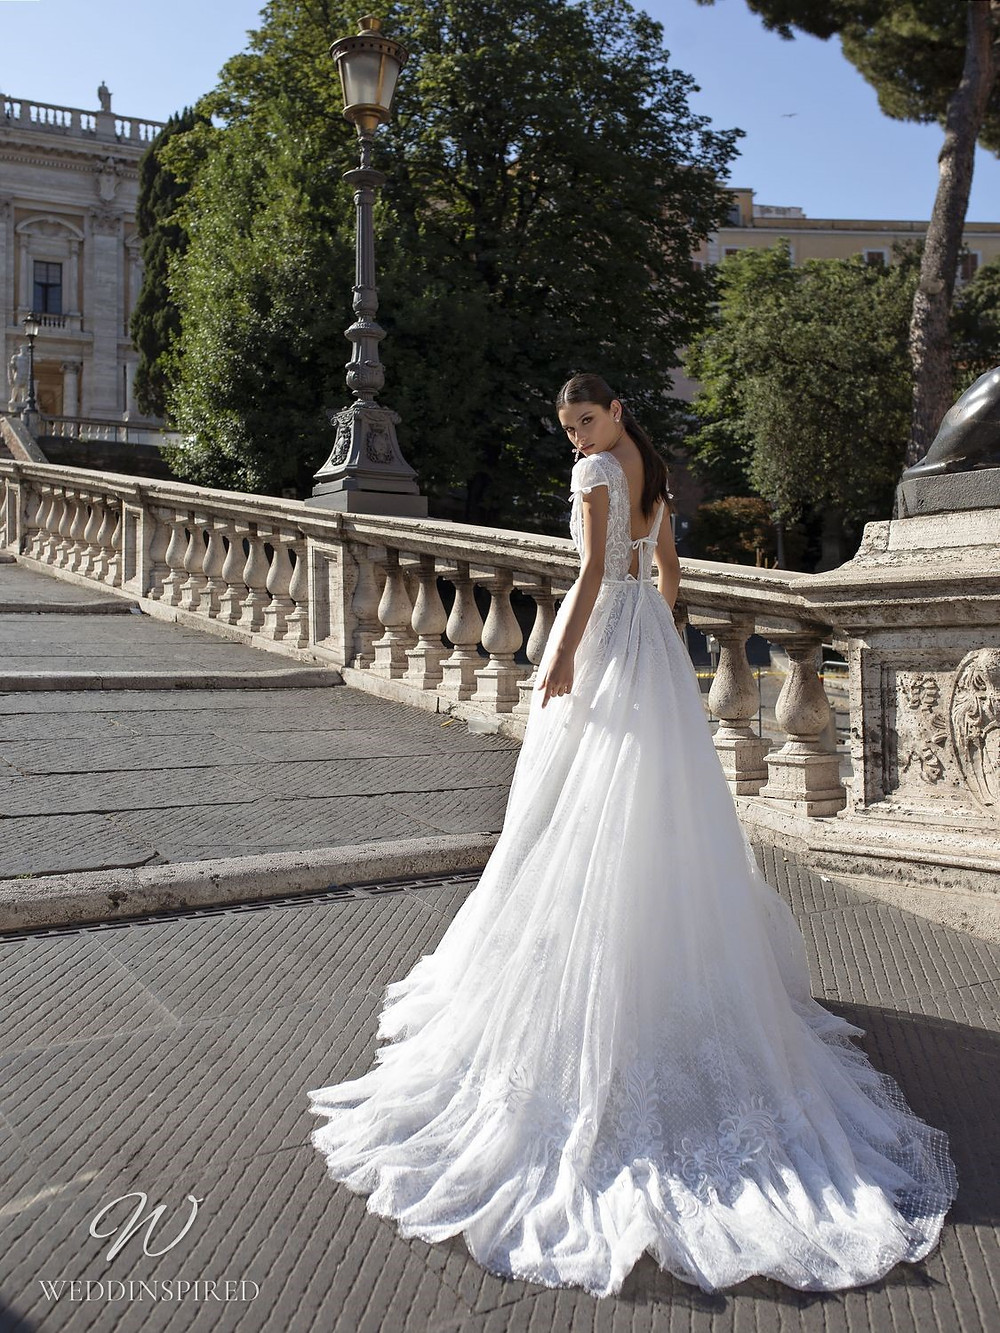 A Pinella Passaro lace A-line wedding dress with a low back and cap sleeves